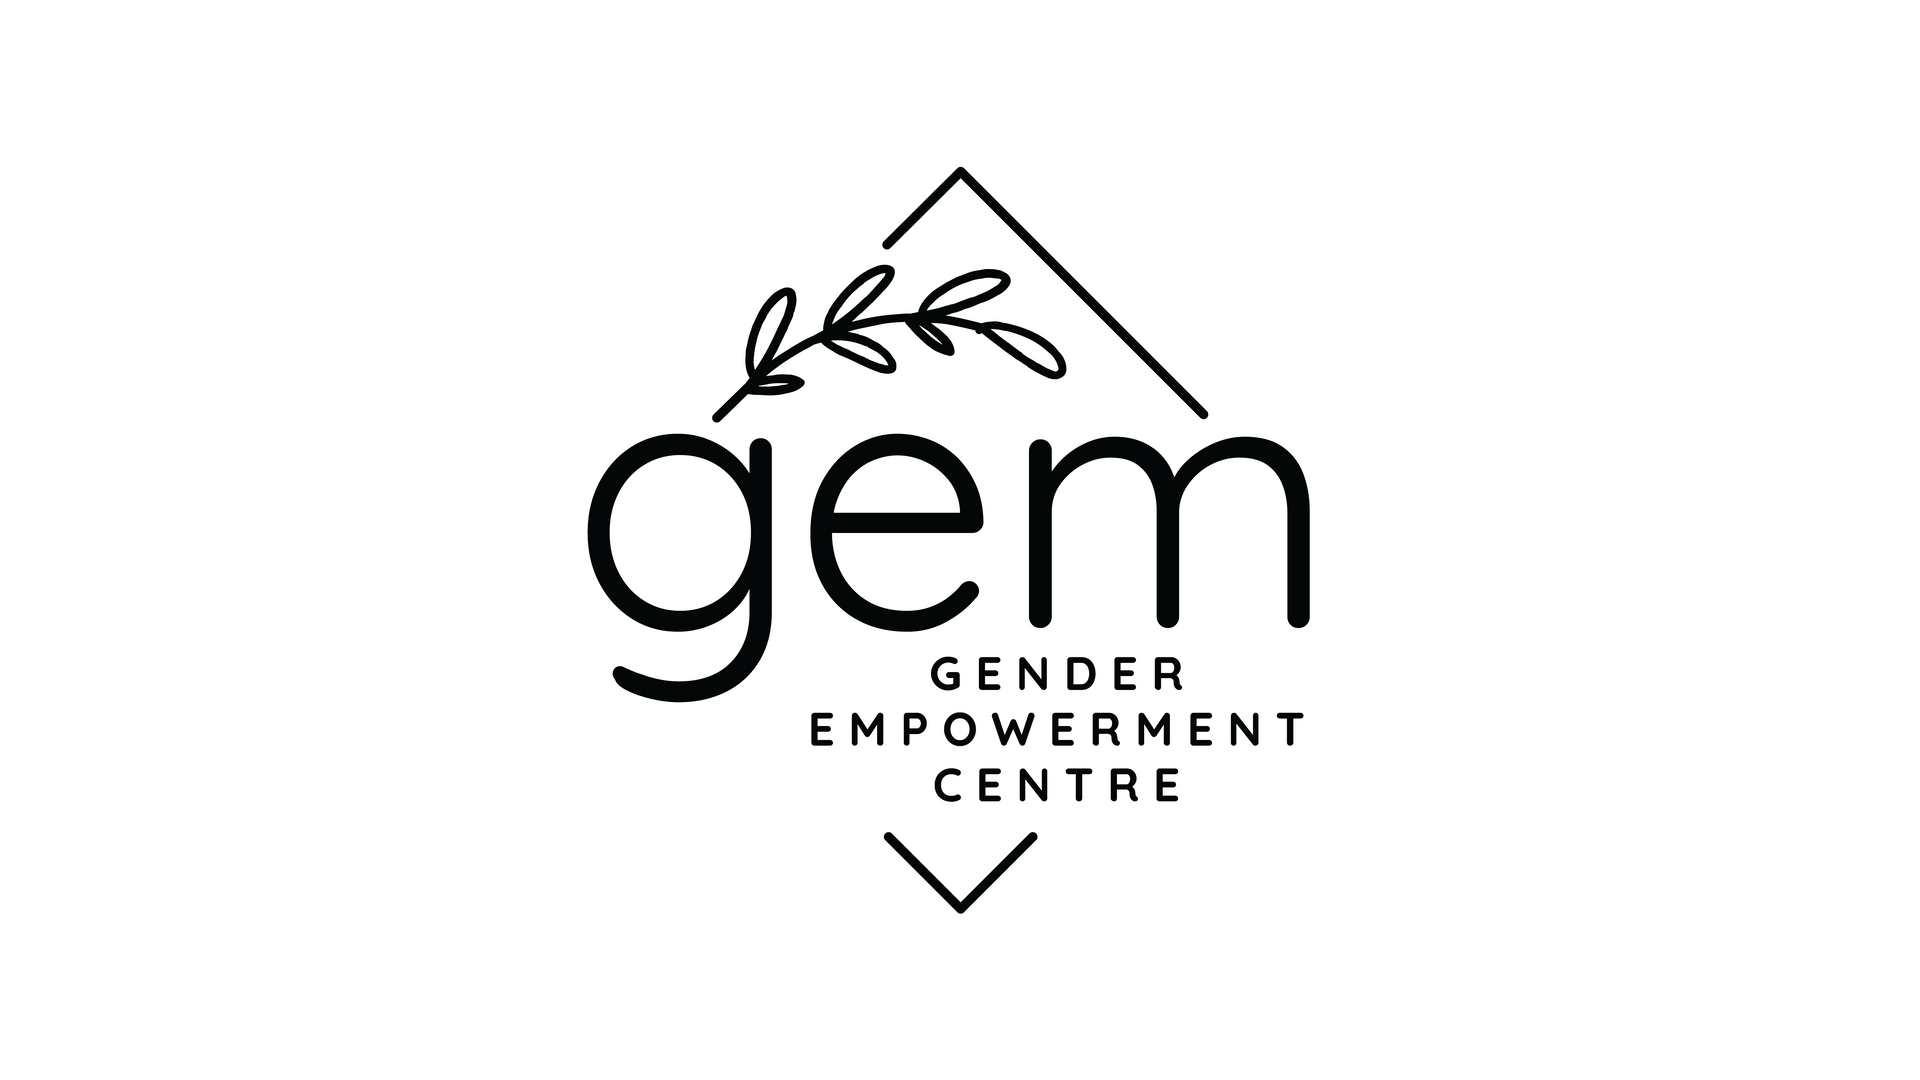 GENDER EMPOWERMENT CENTRE